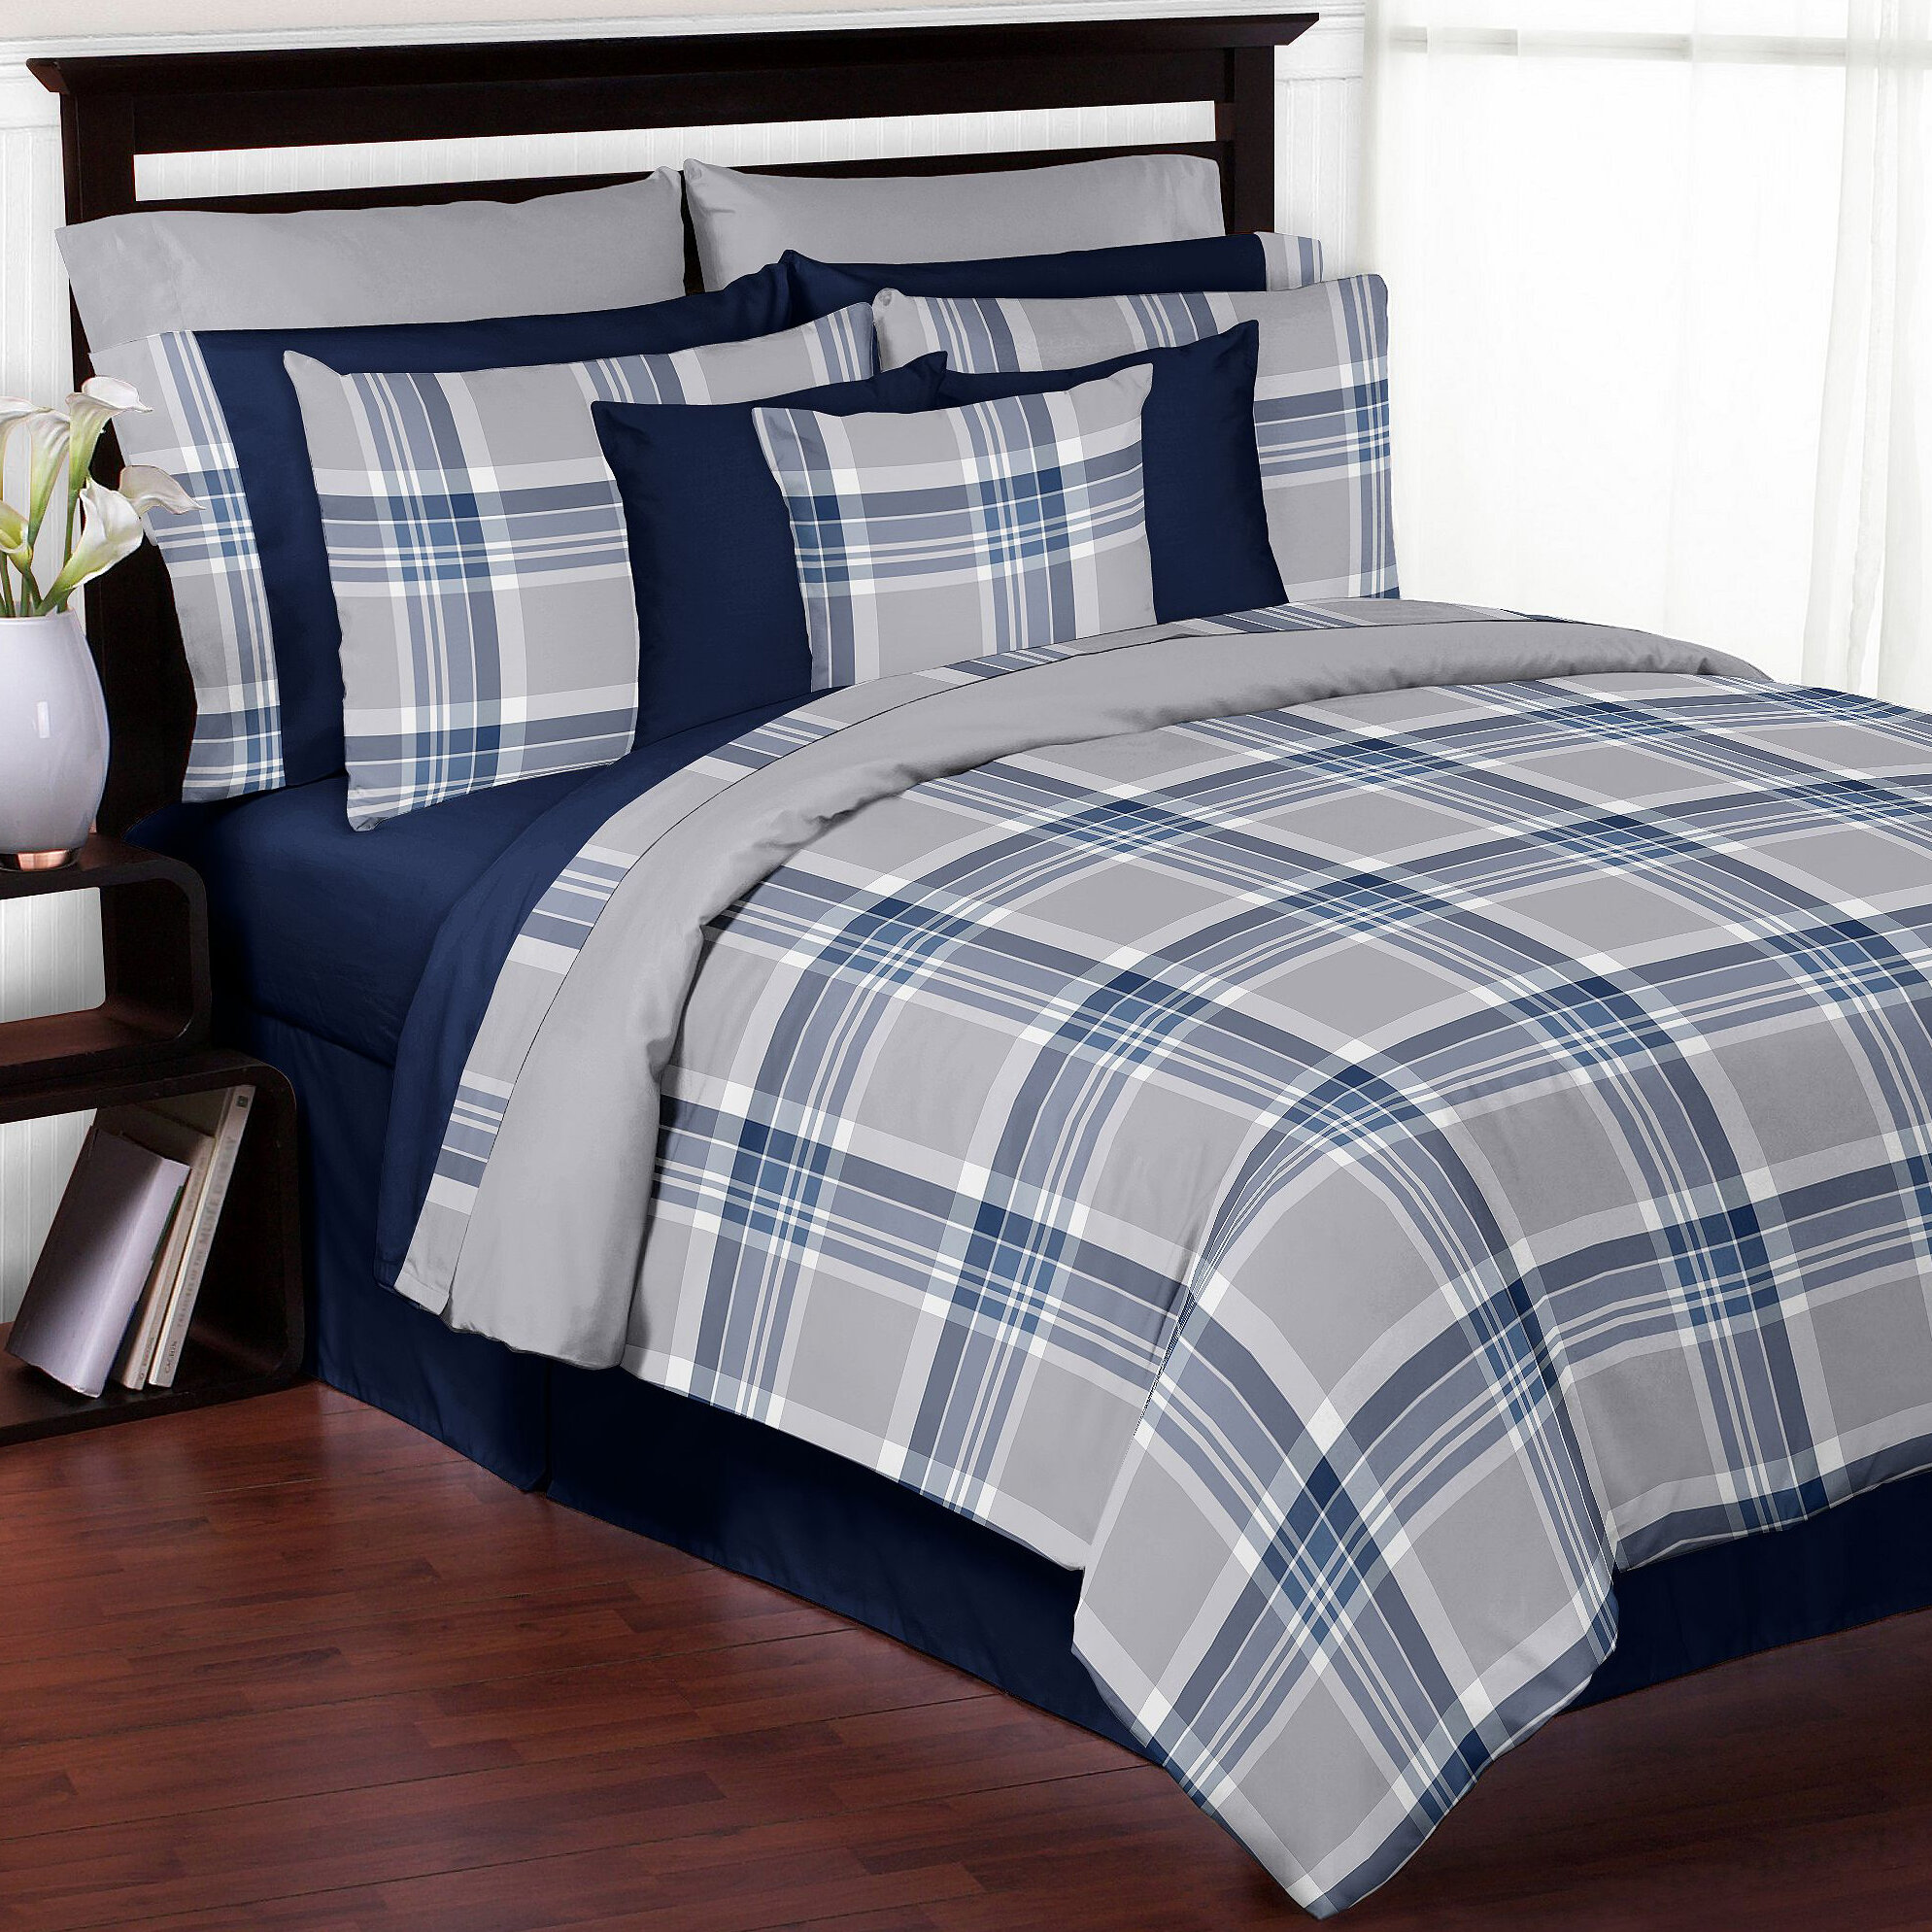 white bauer buffalo check mountain comforter set bedding black product overstock today free shipping eddie bath plaid